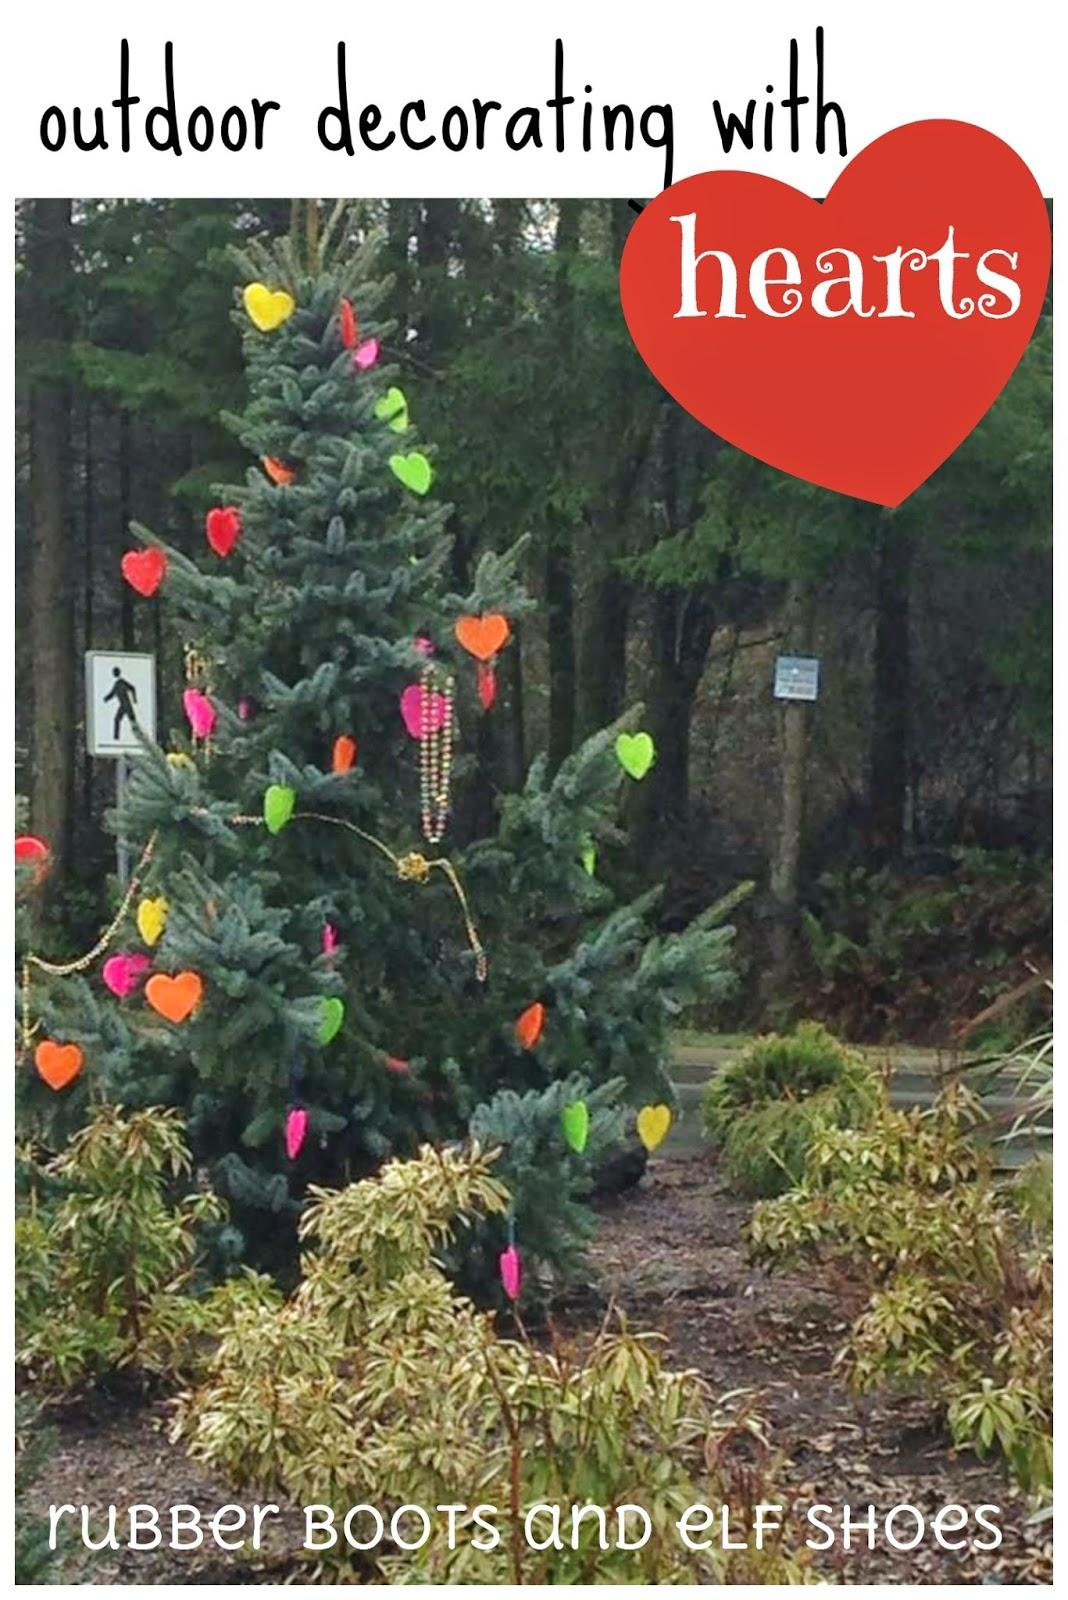 decorating outdoors with Hearts